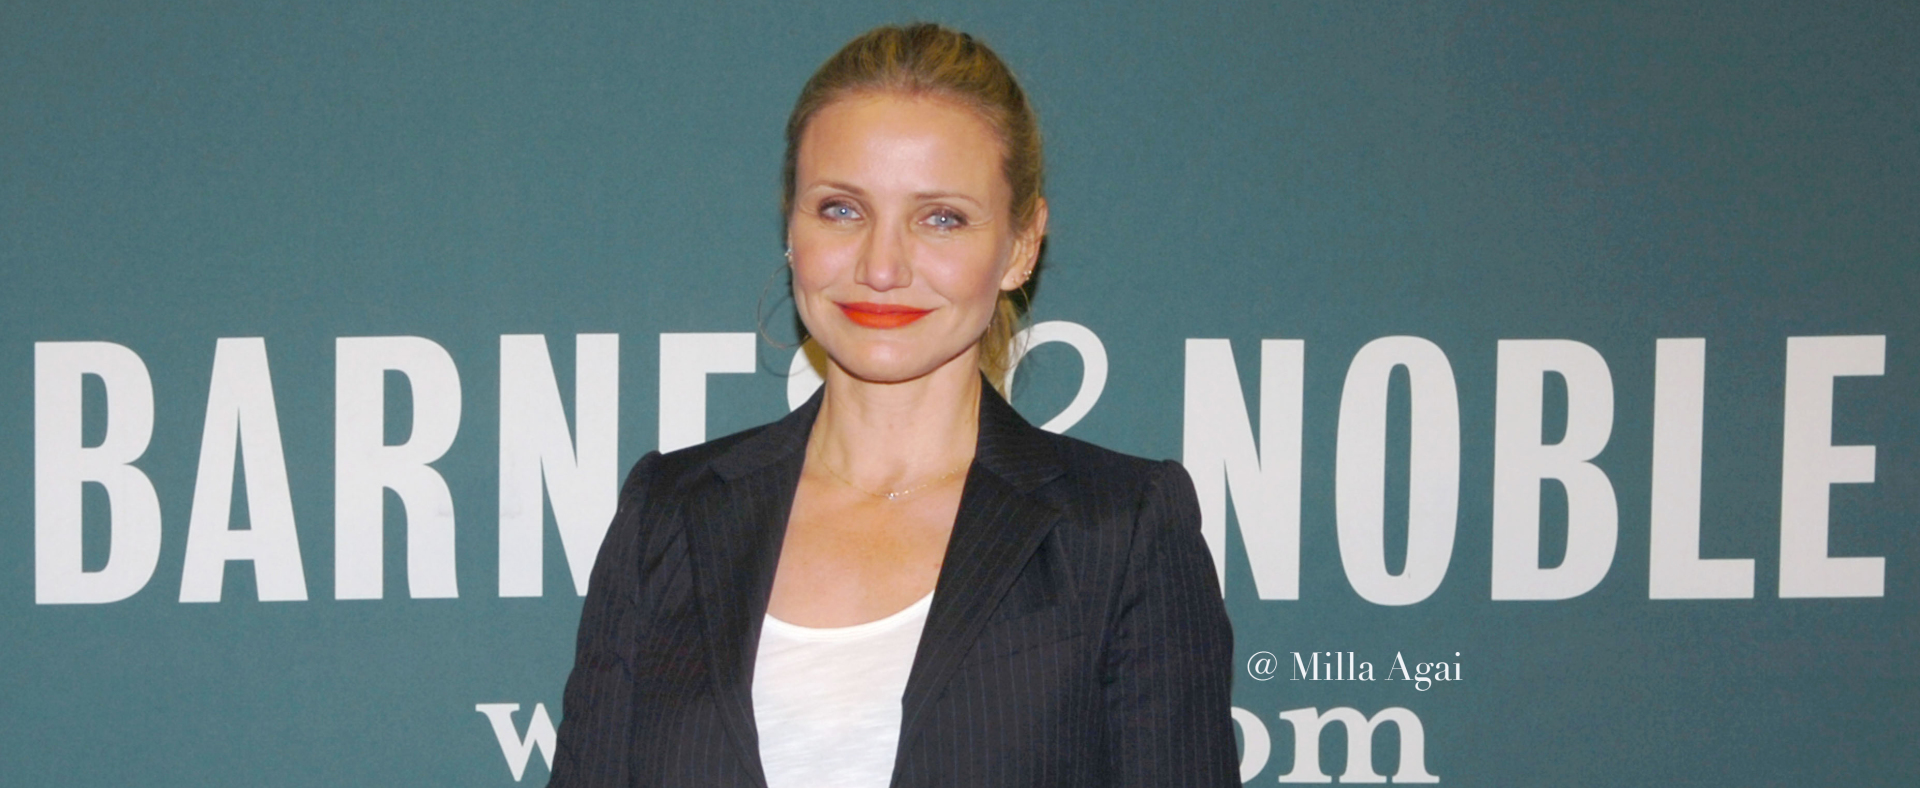 Cameron Diaz Presents her new book.